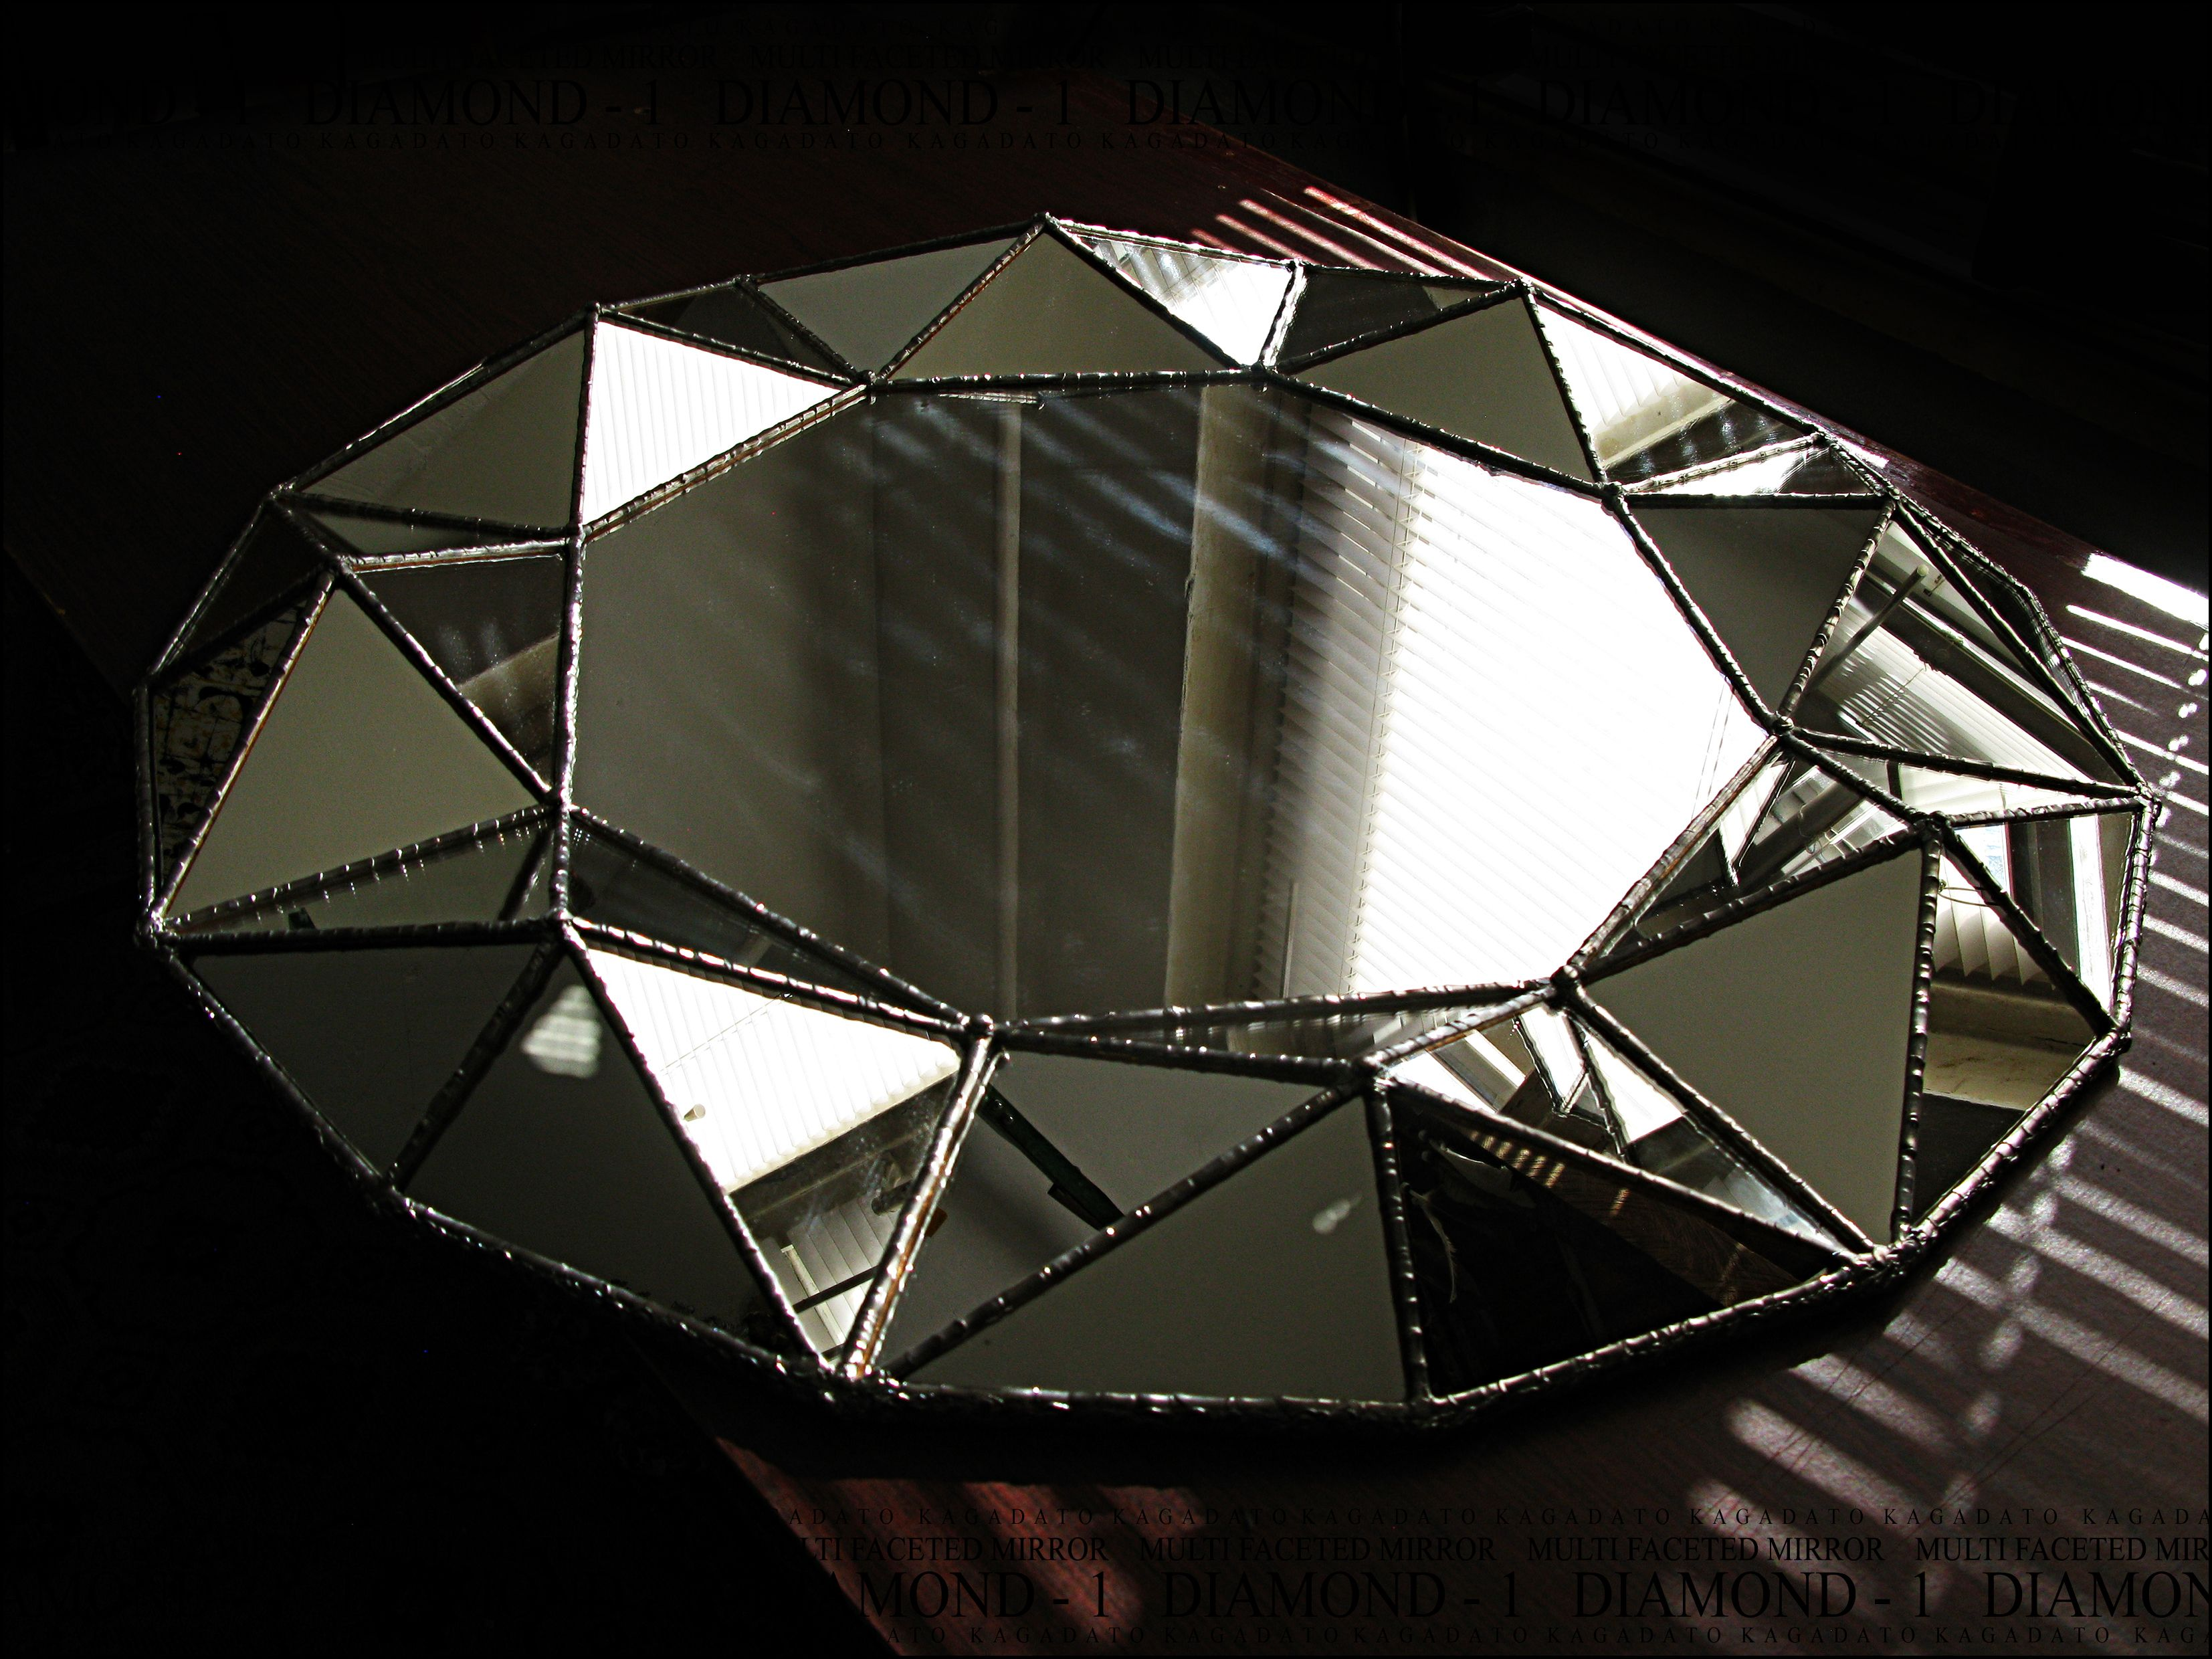 london faceted jpg arcade vaults diamond piccadilly